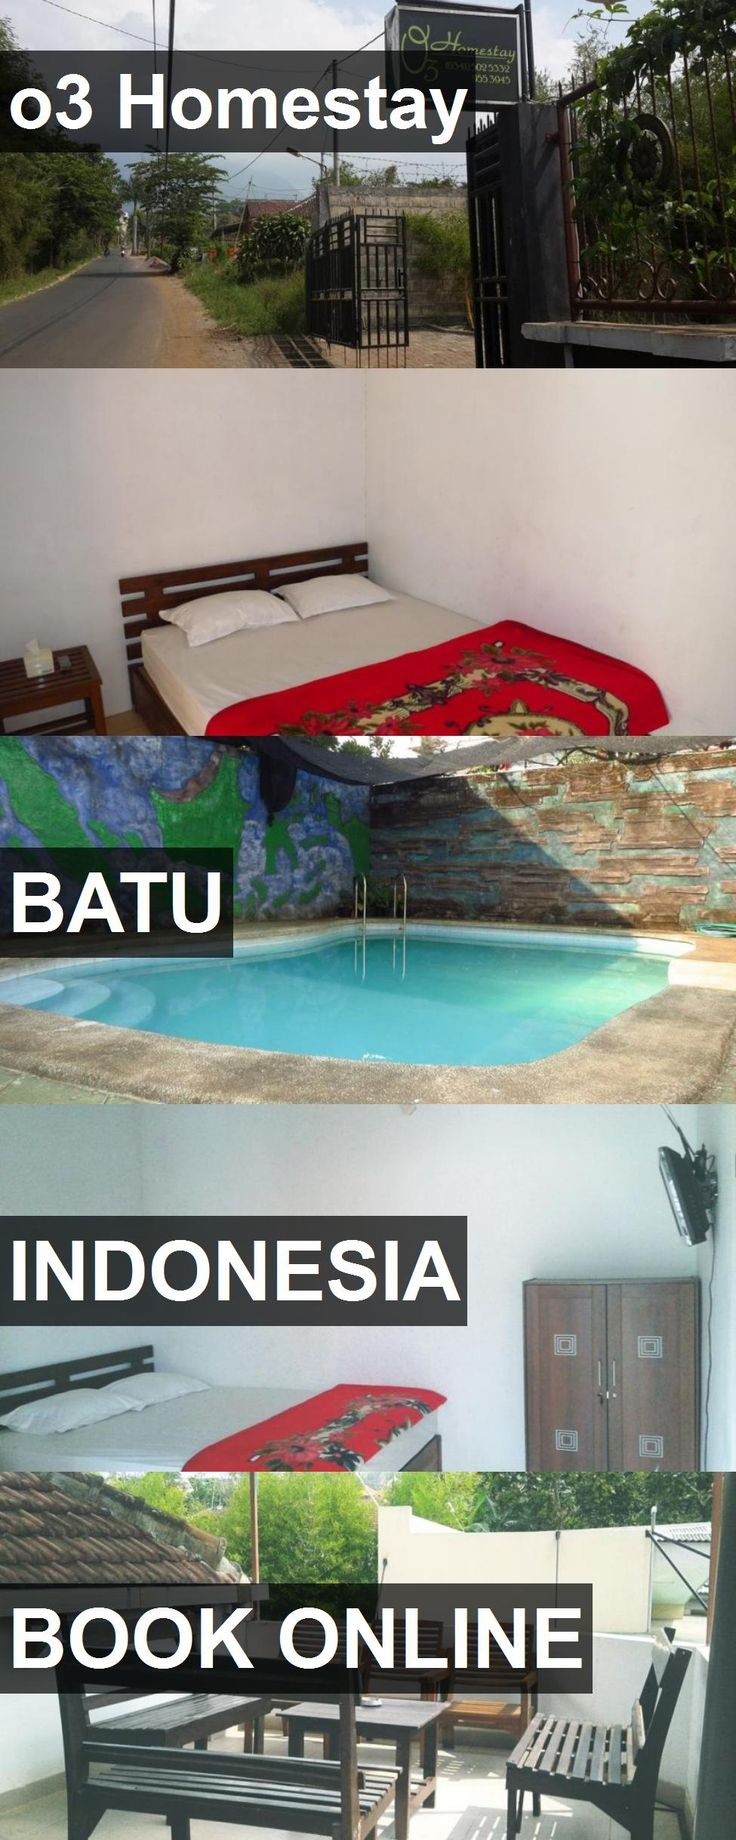 Hotel o3 Homestay in Batu, Indonesia. For more information, photos, reviews and best prices please follow the link. #Indonesia #Batu #travel #vacation #hotel